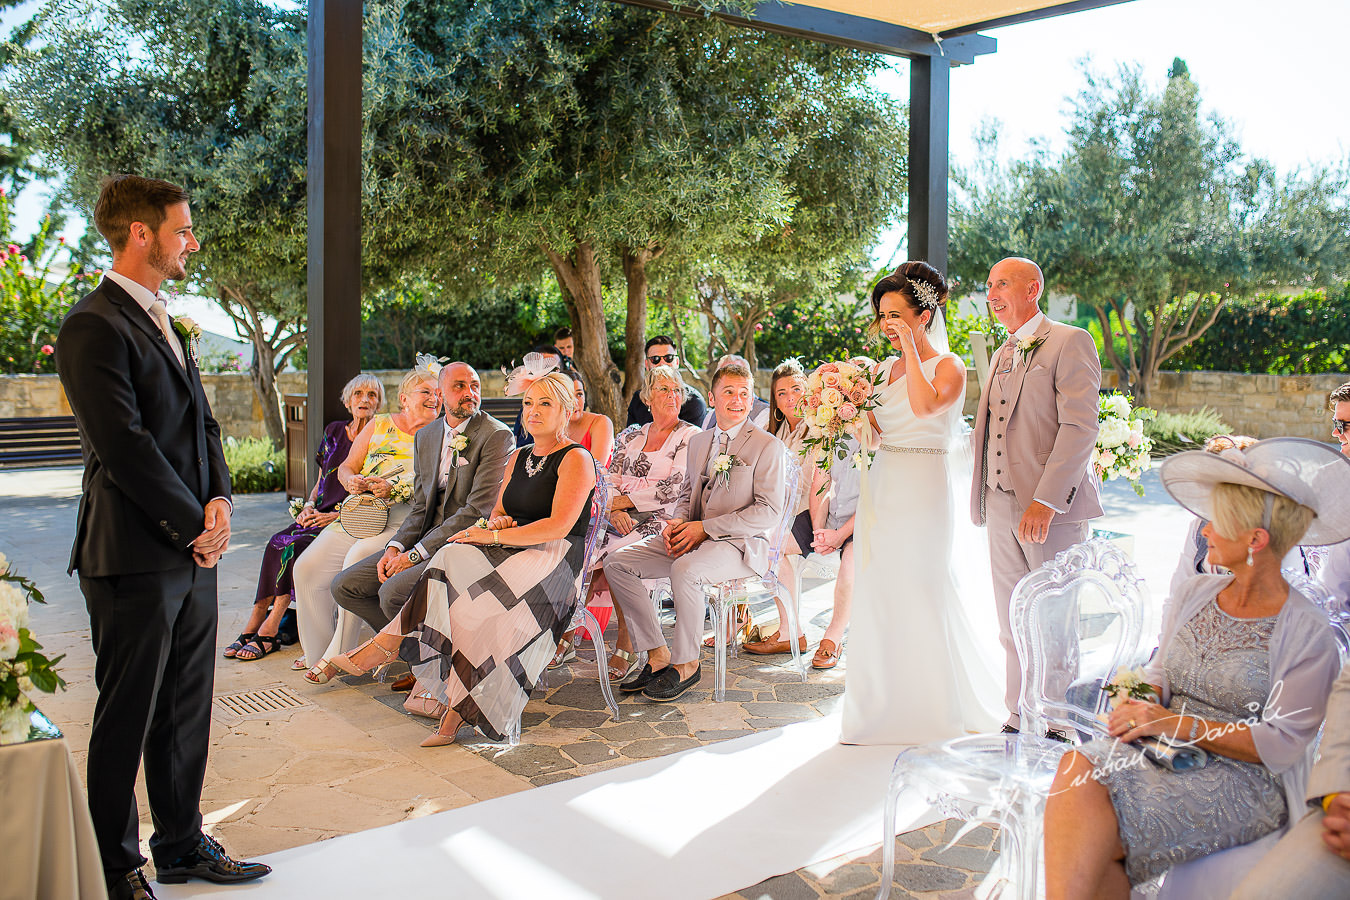 The first look between the bride and groom, moments captured by Cristian Dascalu during an elegant Aphrodite Hills Wedding in Cyprus.